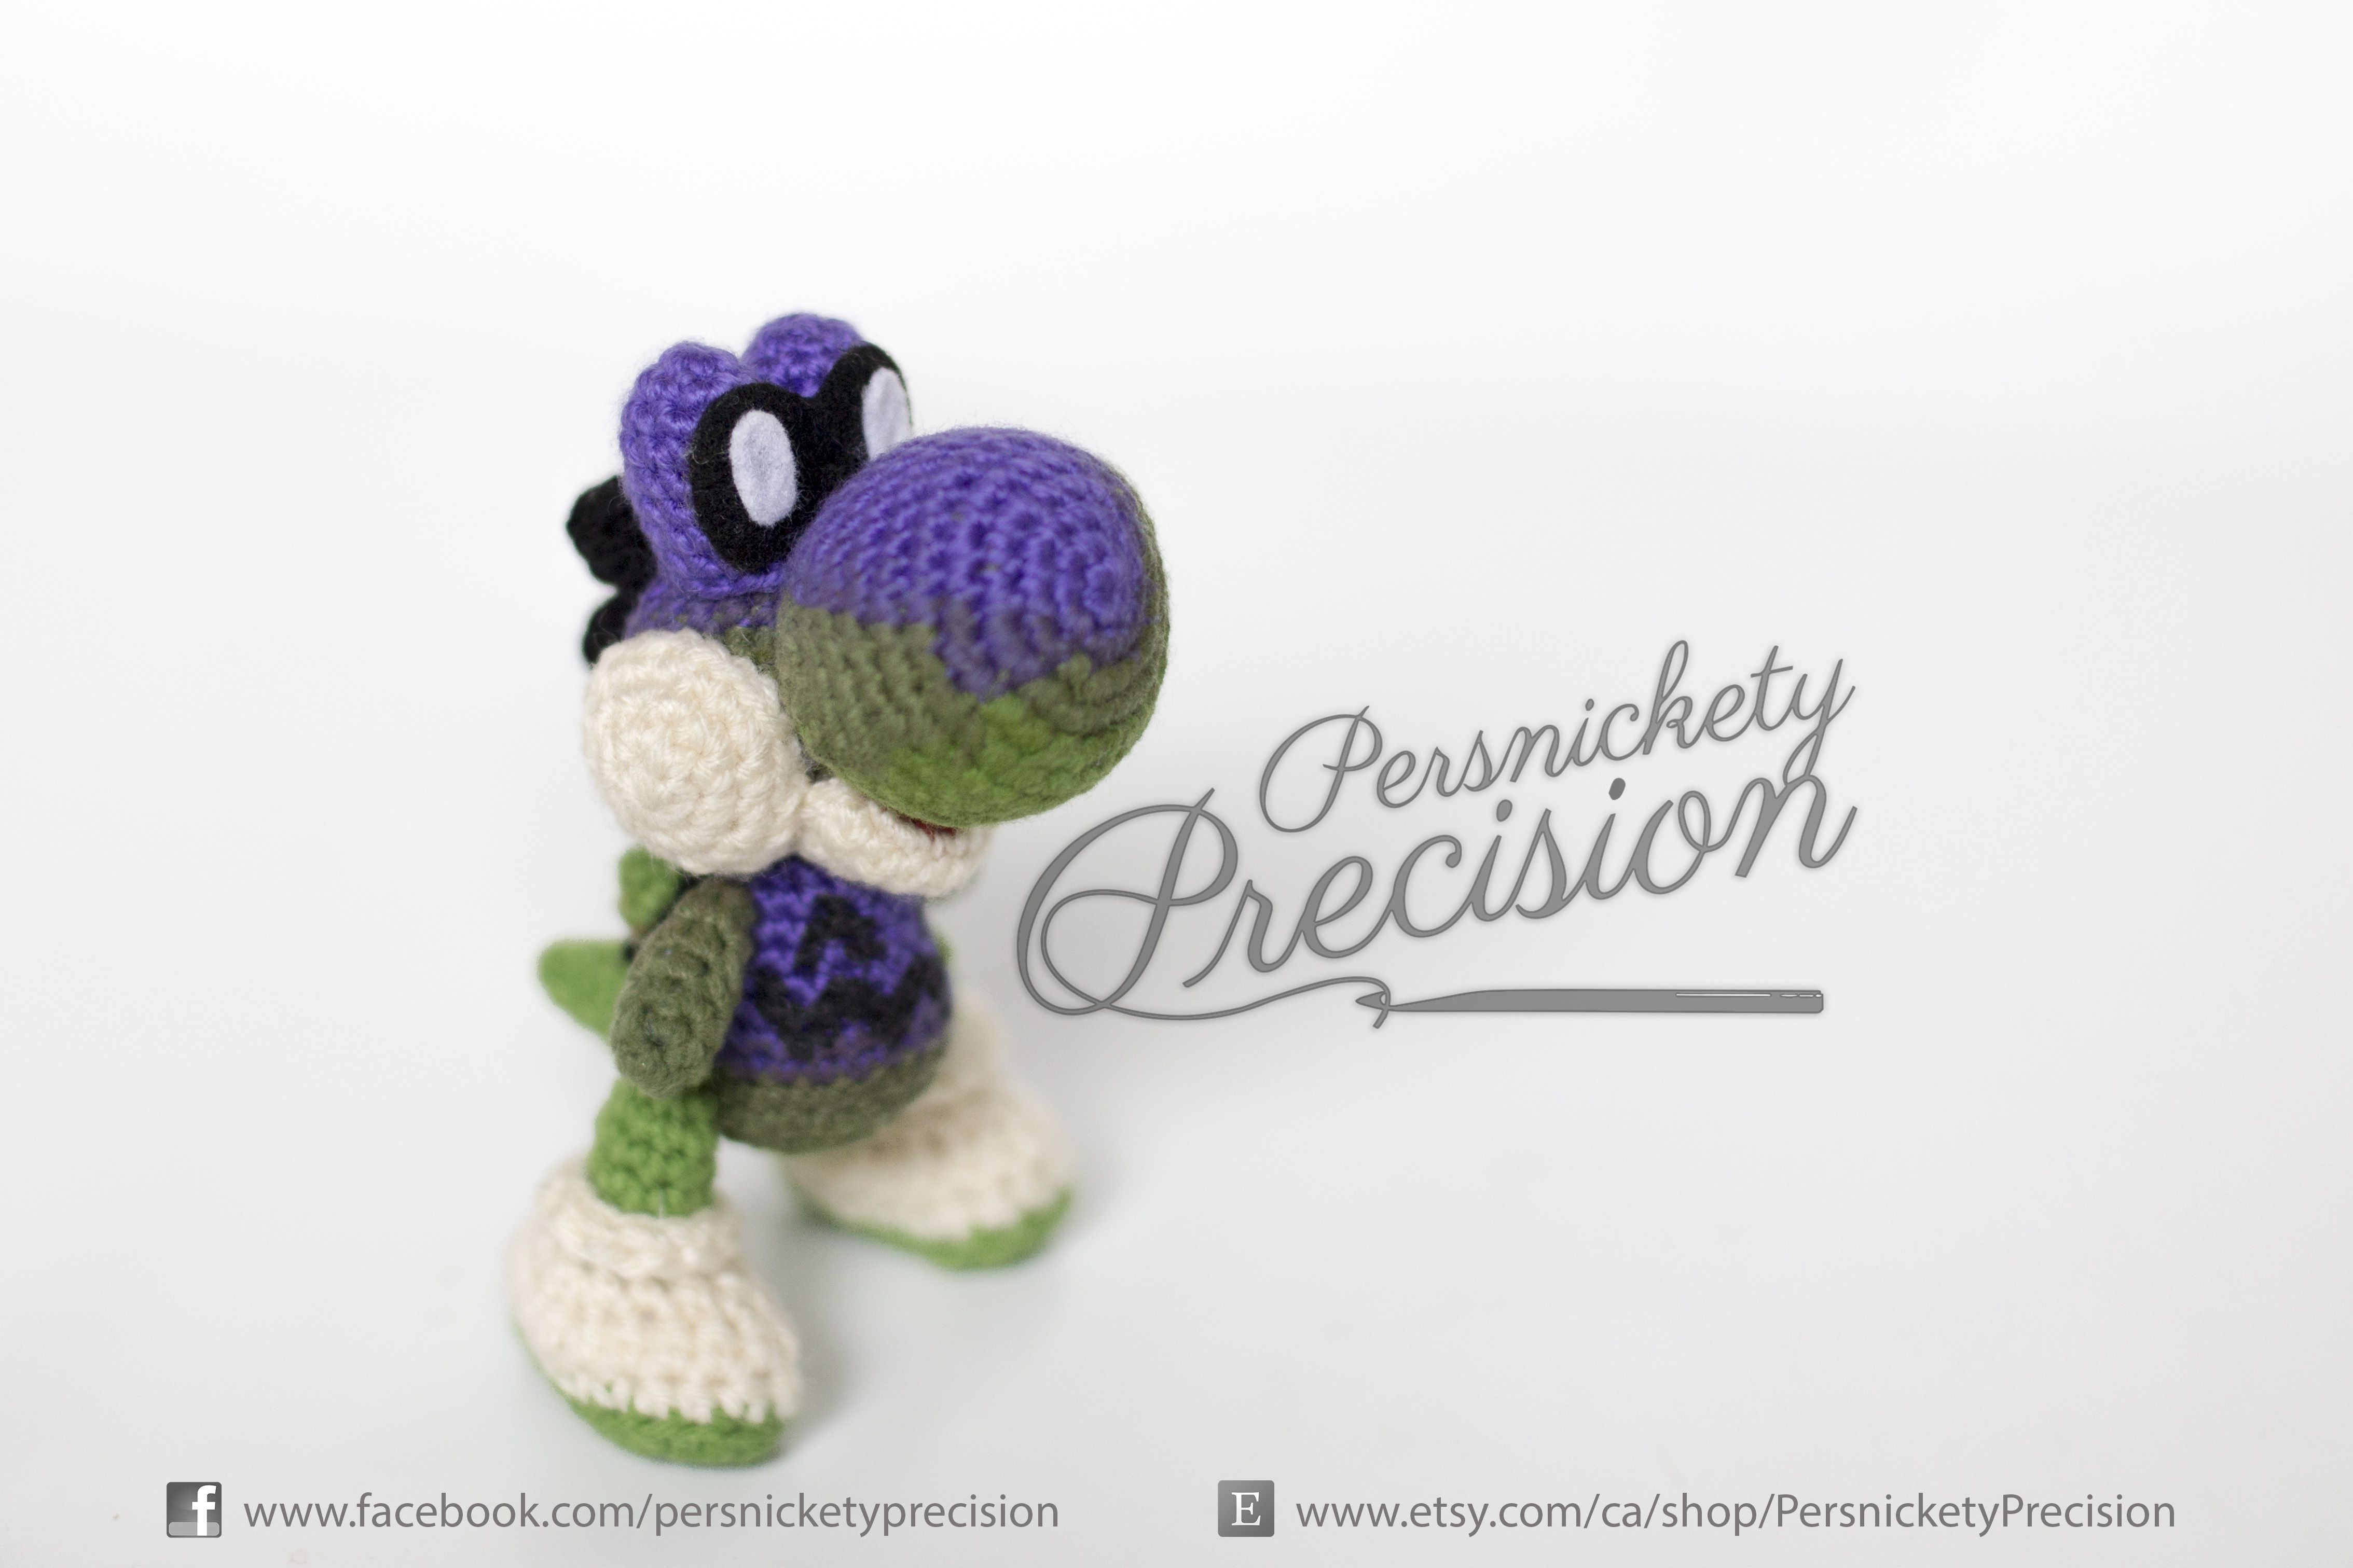 Crochet Spooky Yoshi by Persnickety Precision. In time for Halloween ...